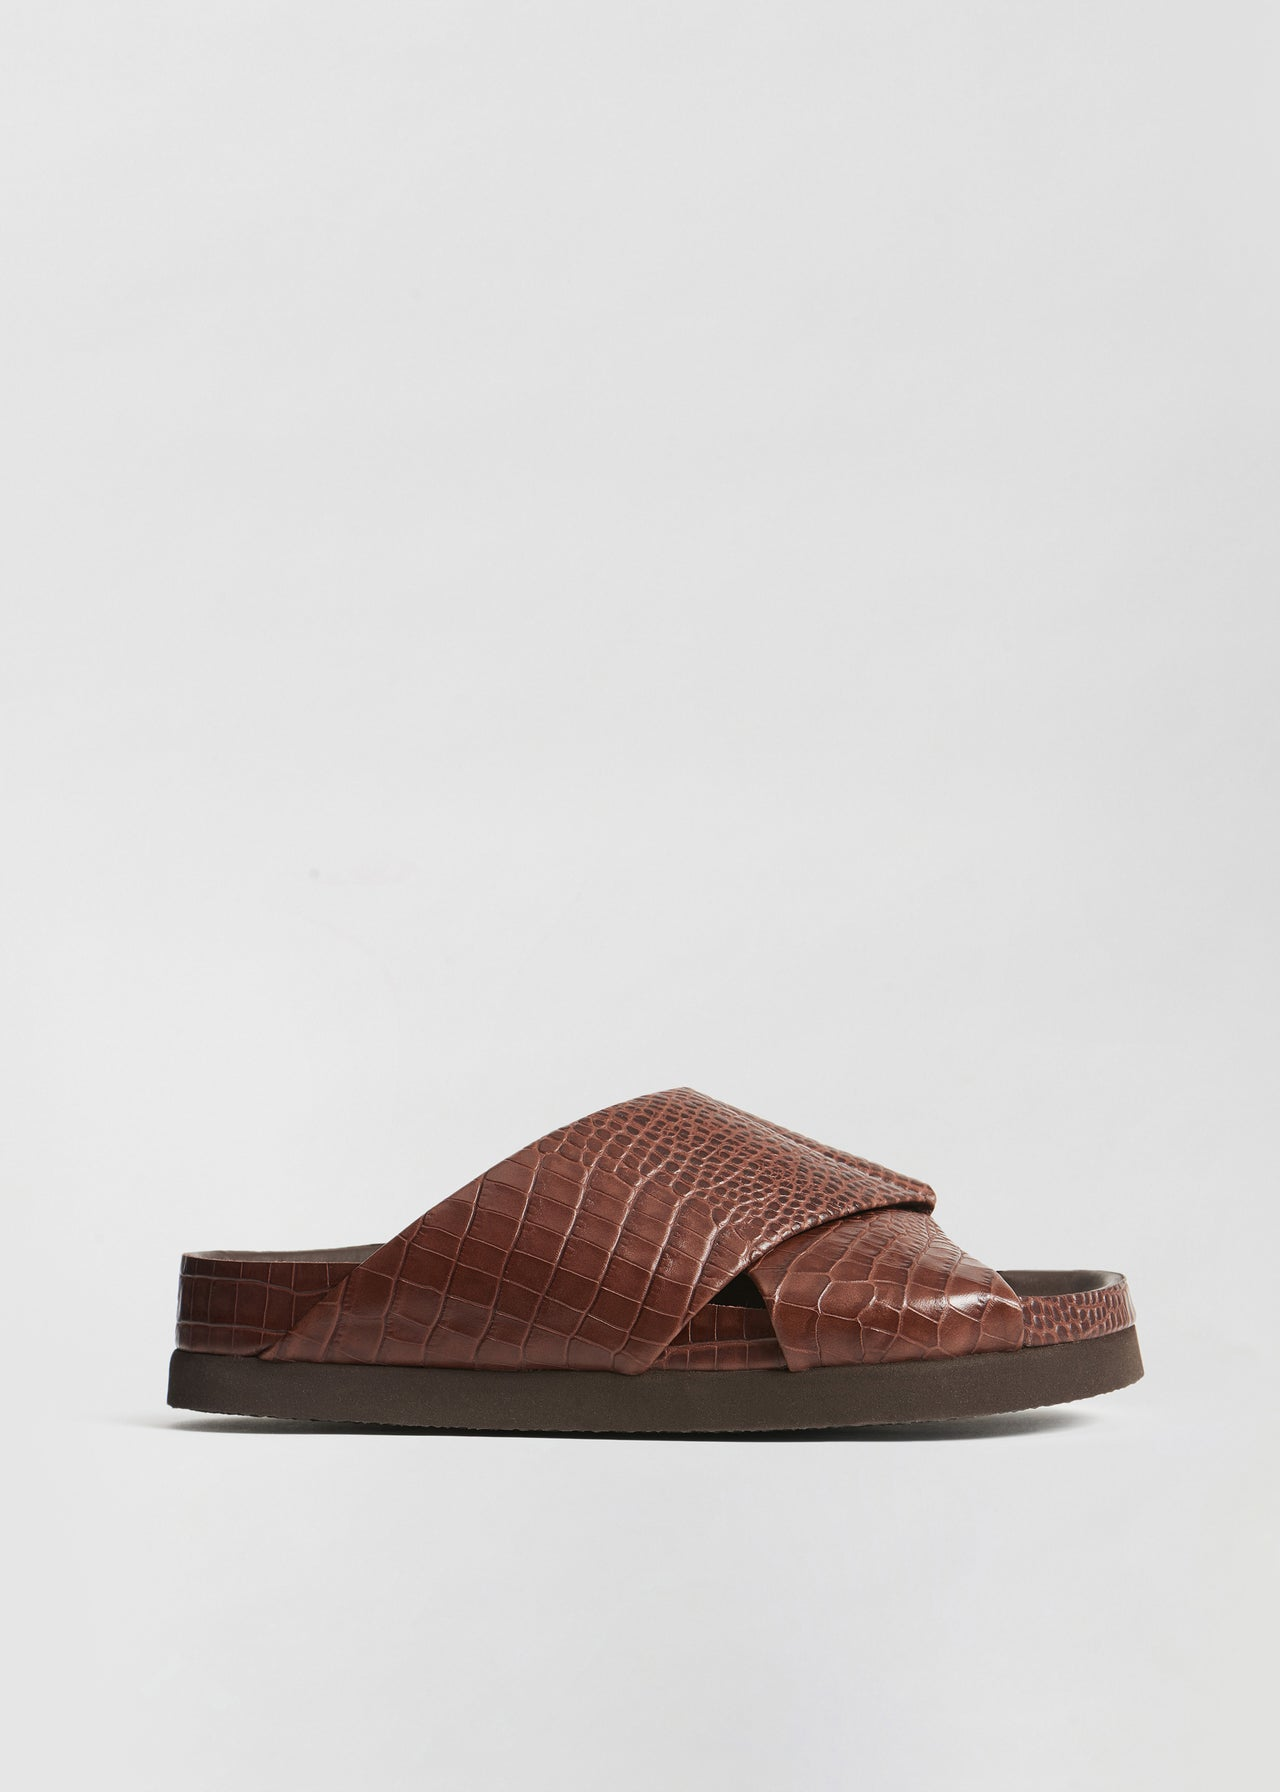 Slide Sandal in Stamped Leather - CO Collections